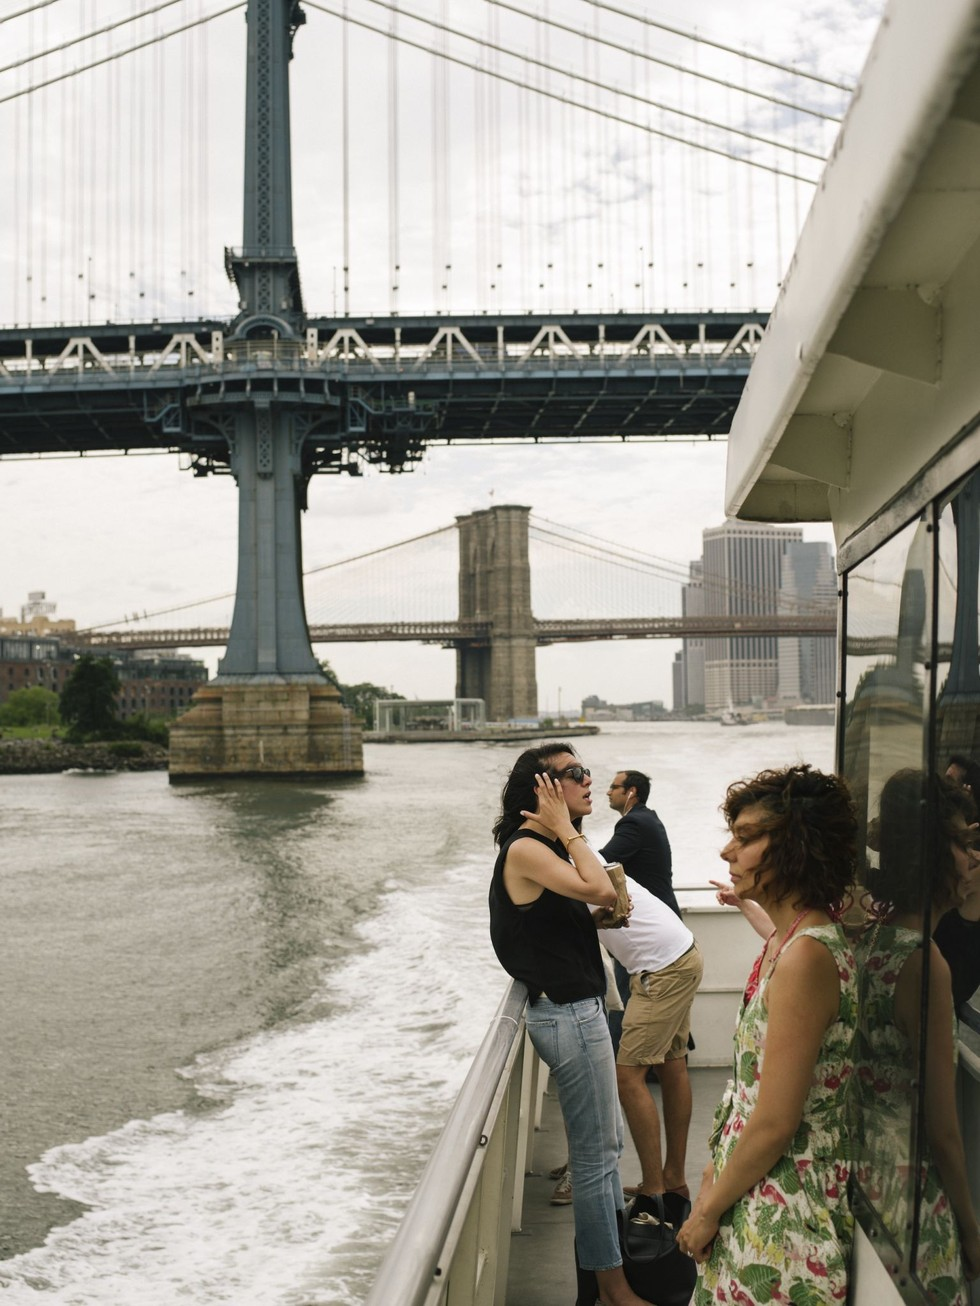 East River Ferry, New York